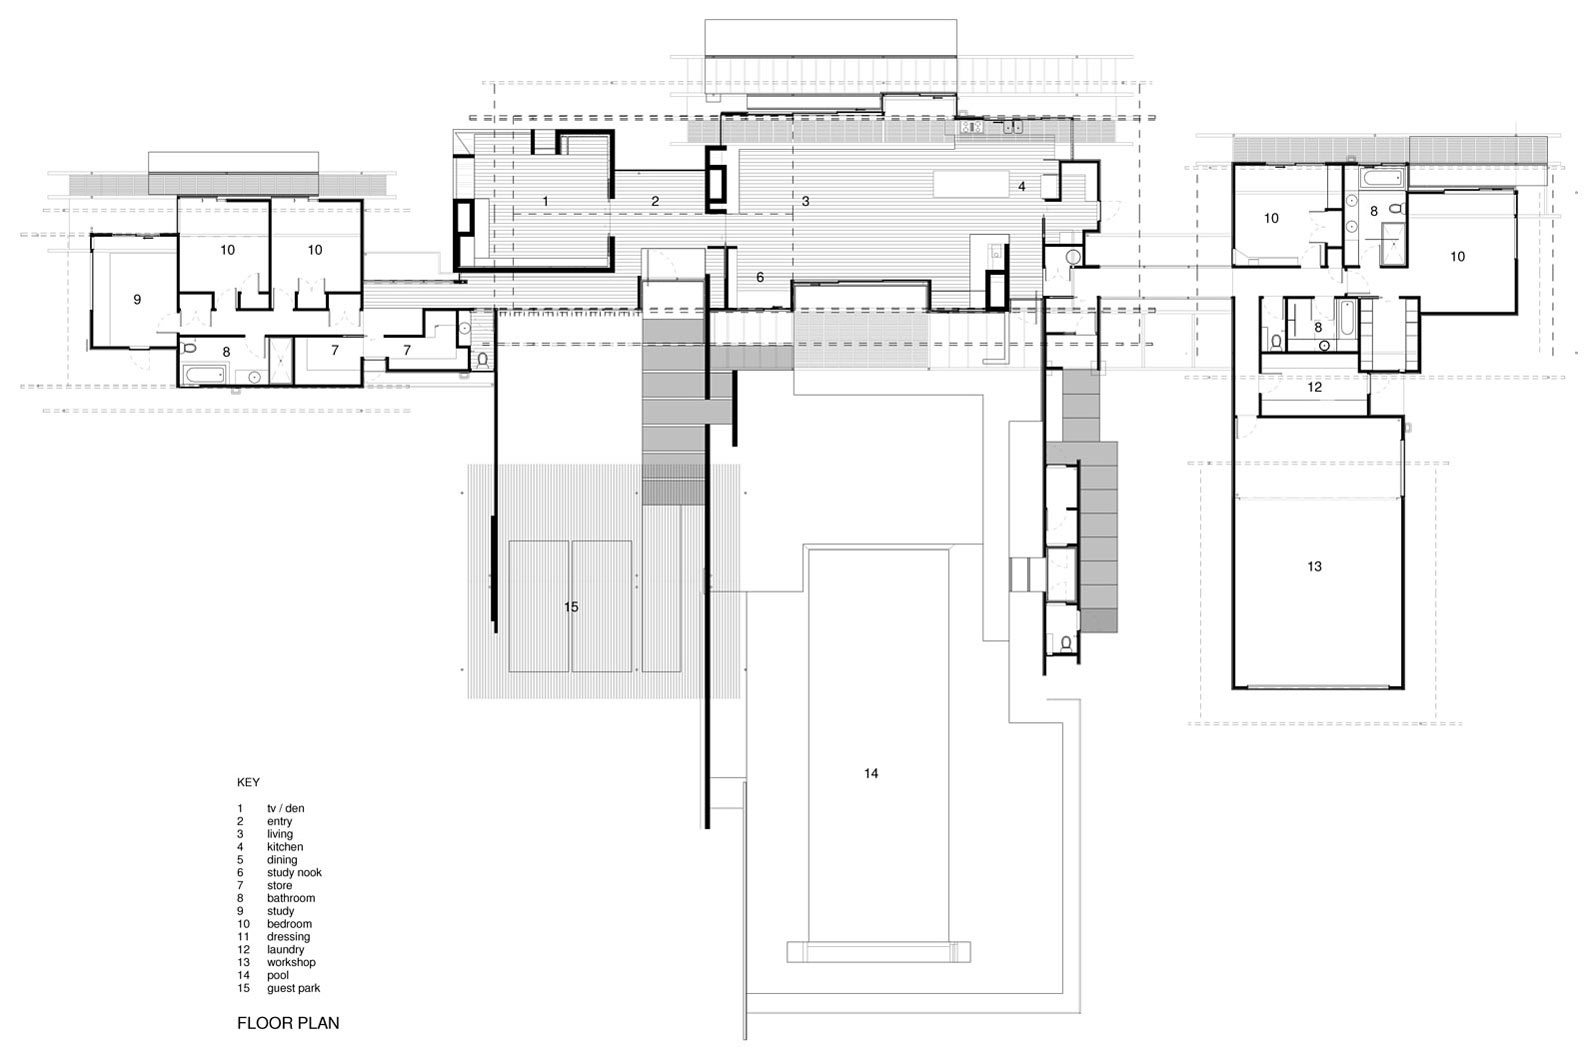 Floor Plan, Wairau Valley House in Rapaura, New Zealand by Parsonson Architects